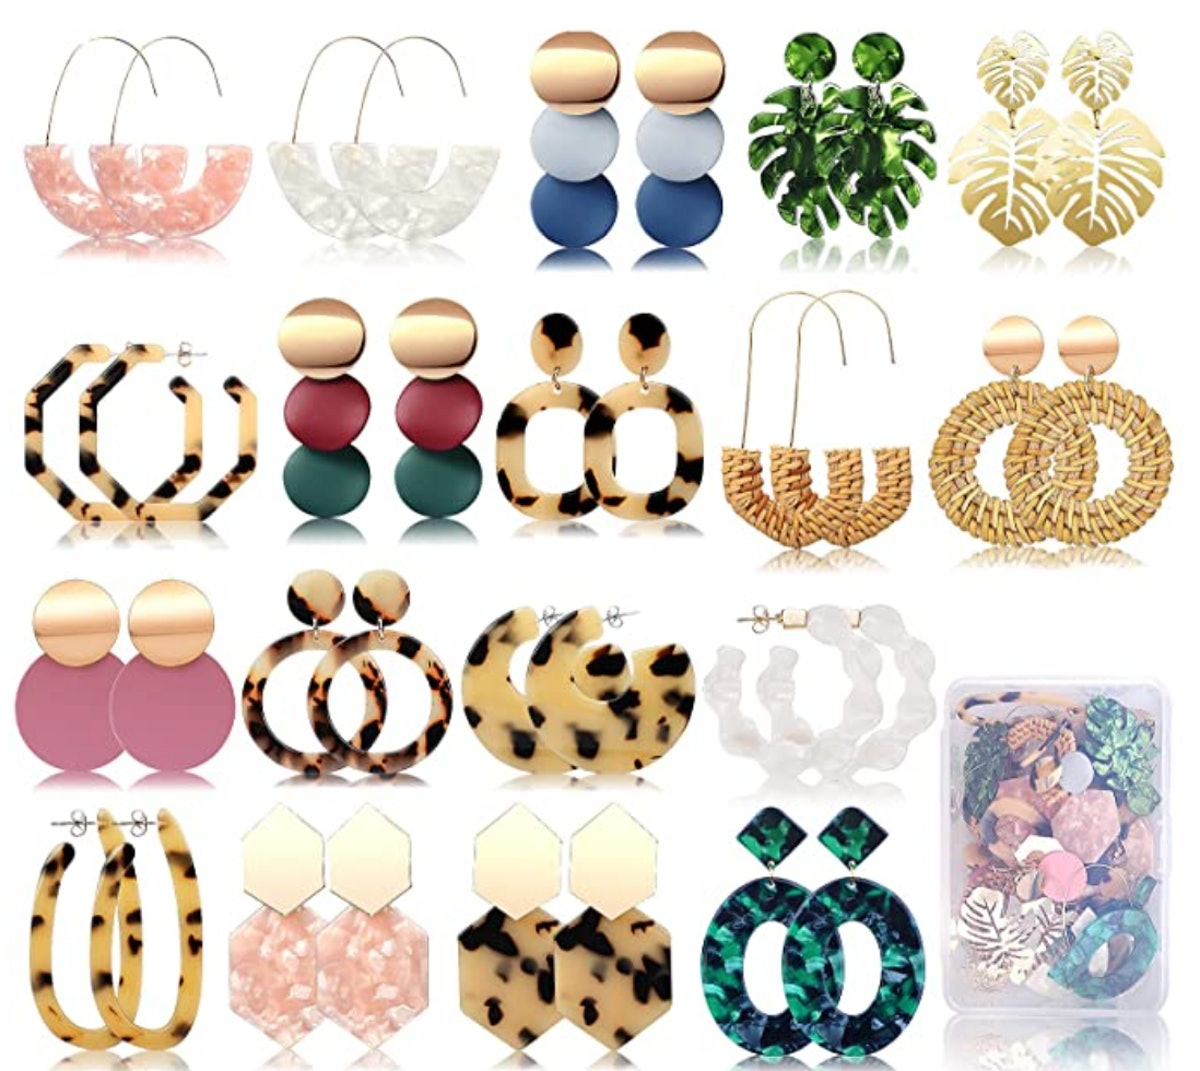 FIFATA Statement Earrings (18 Pairs)